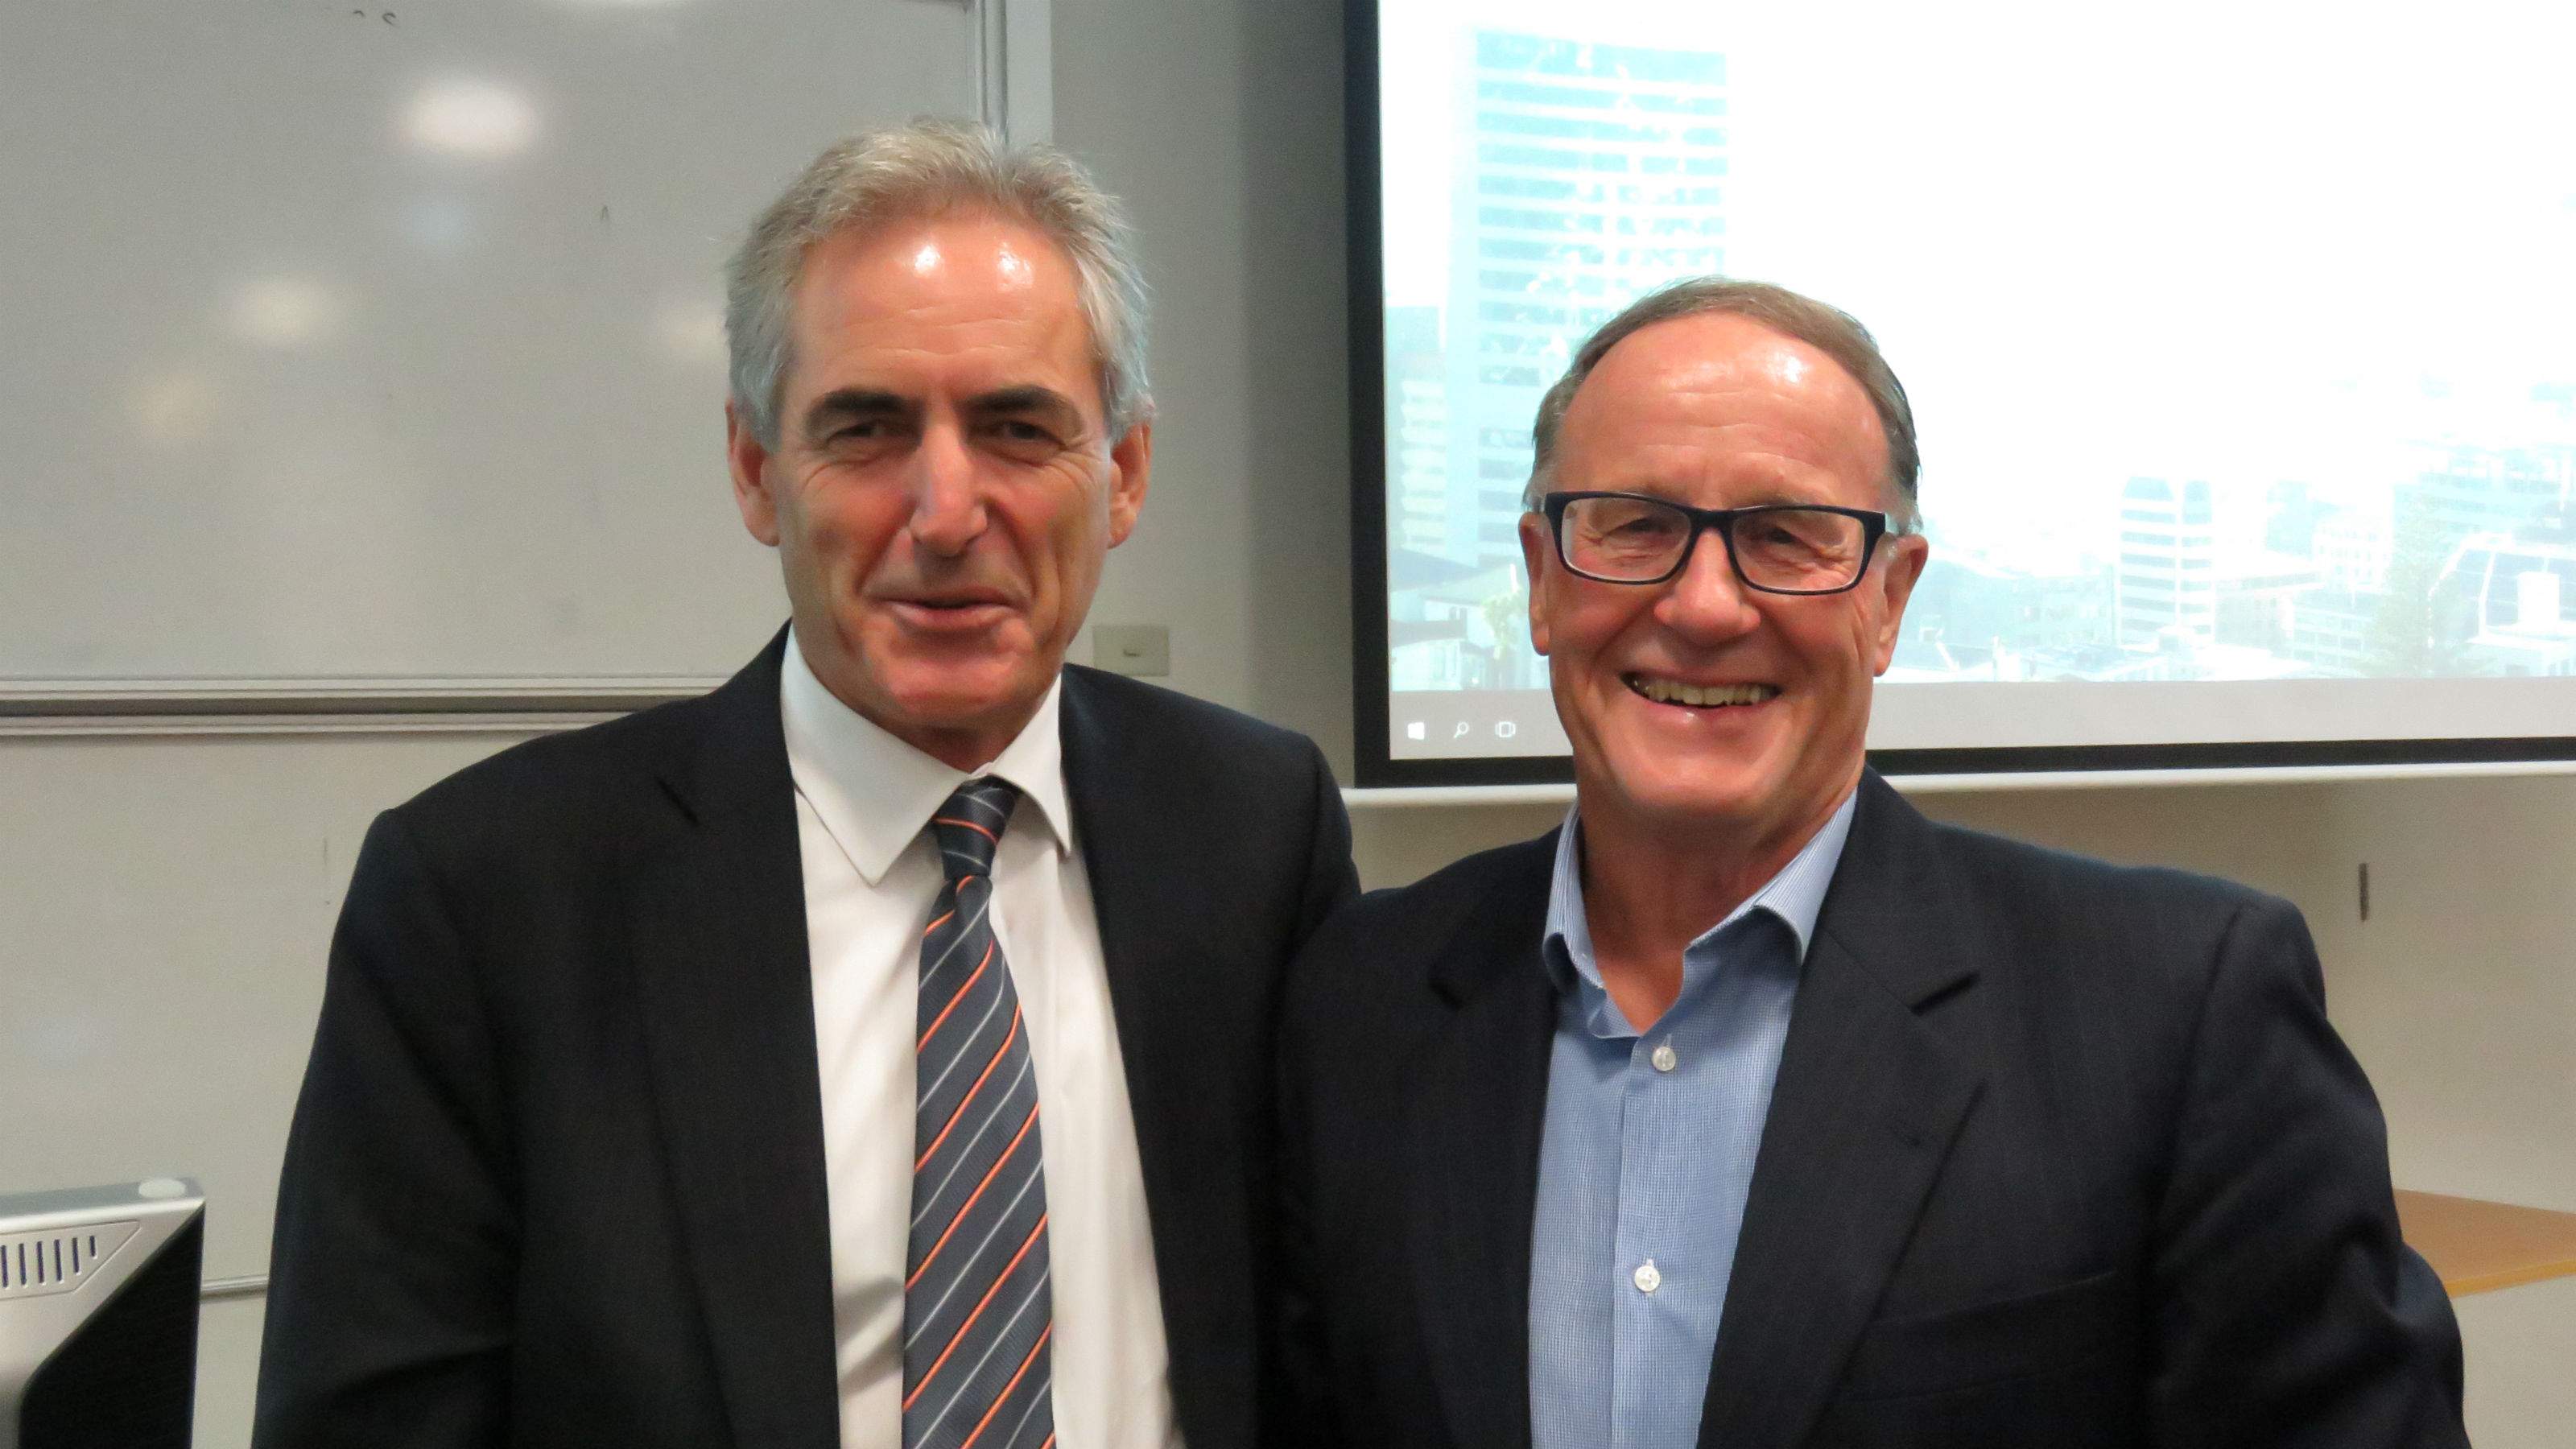 Professor Philip Morrison and Vice-Chancellor, Professor Grant Guildford, stand side-by-side at the event.